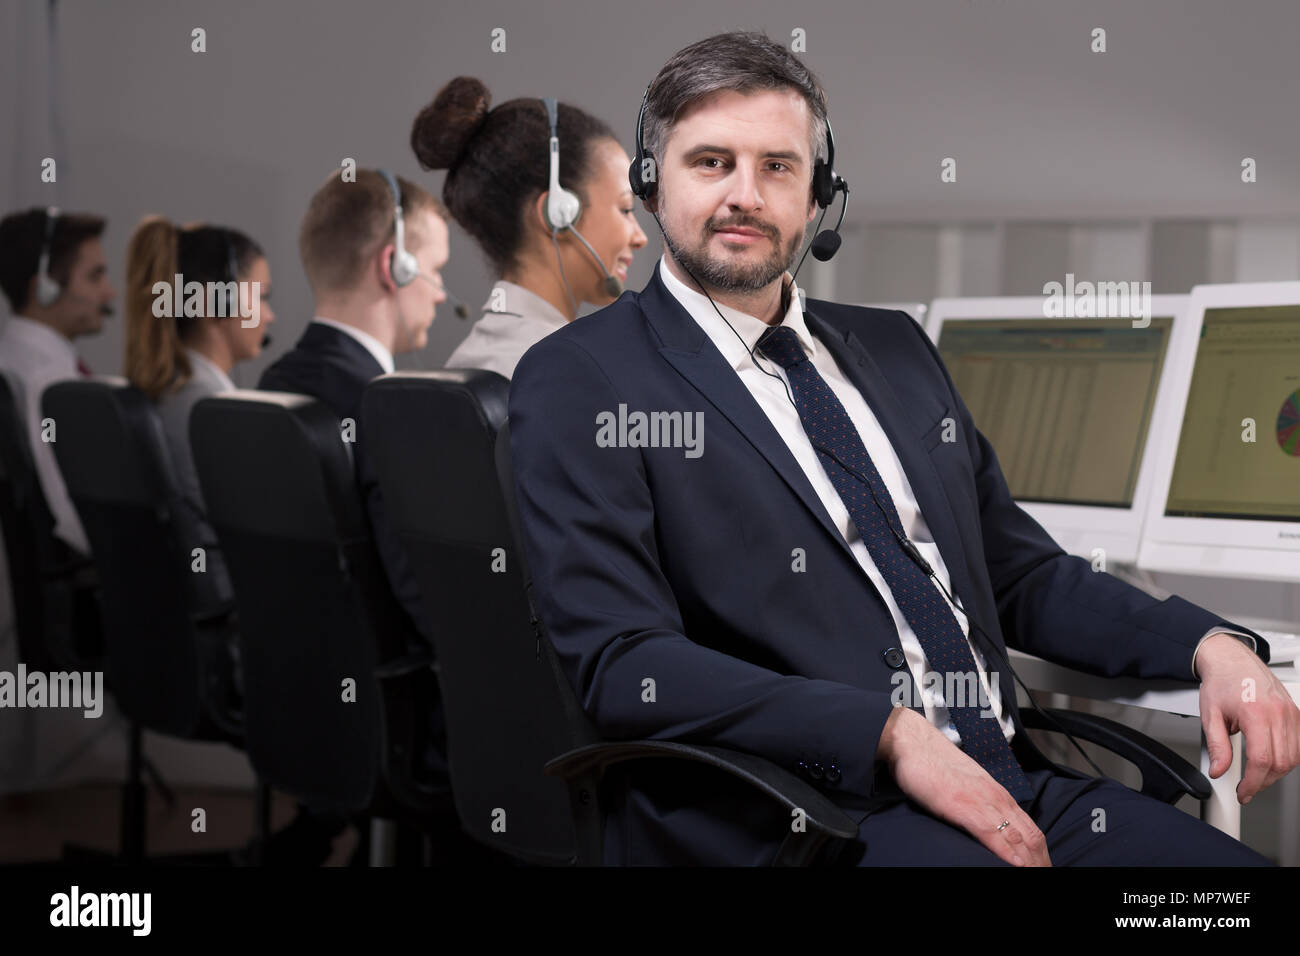 Man in suit with headset working in call center Stock Photo